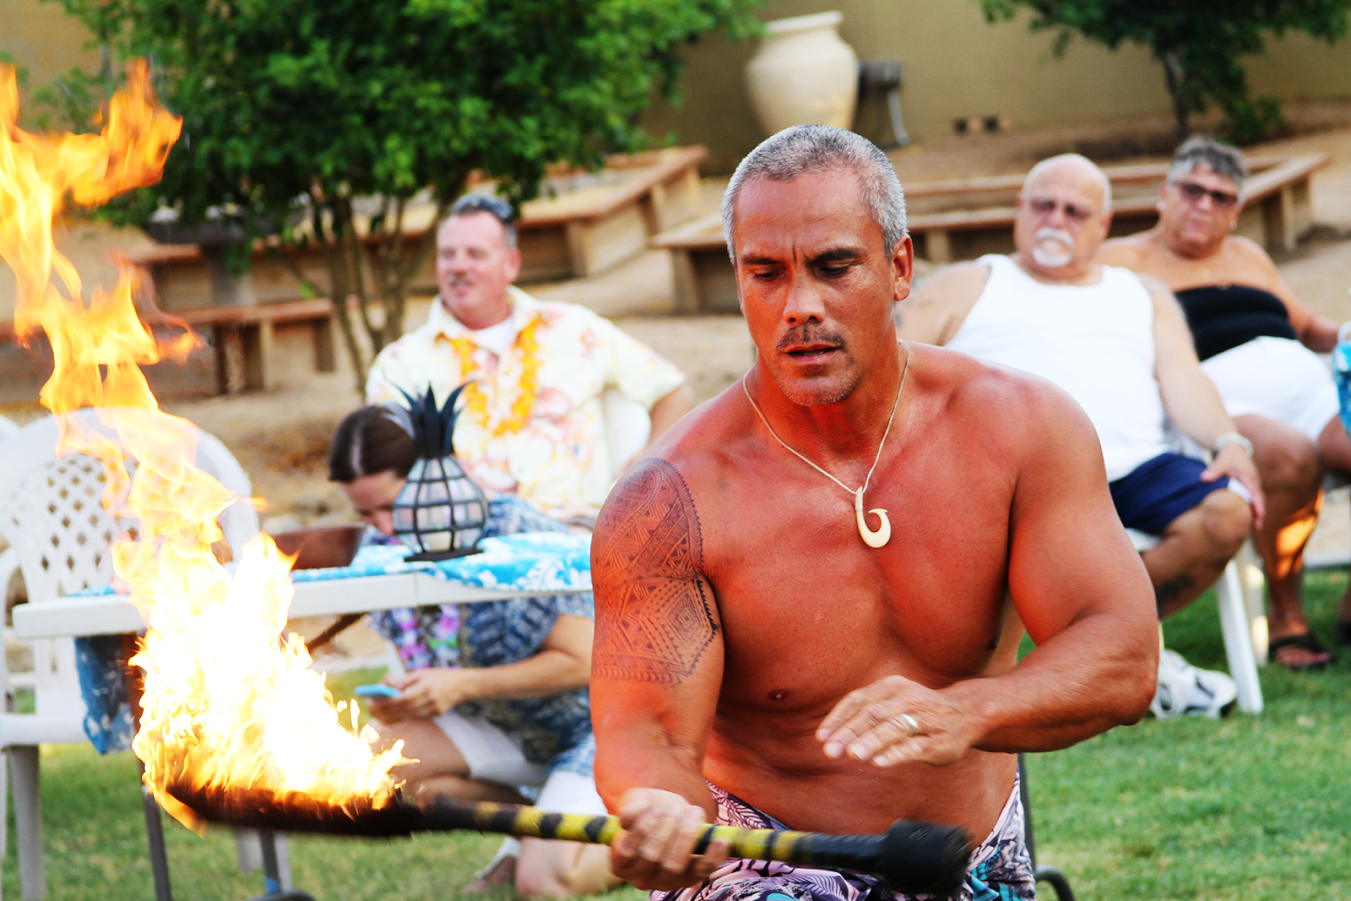 At our annual Luau you will find Paul the fire dancer showing off his skills to the crowd.